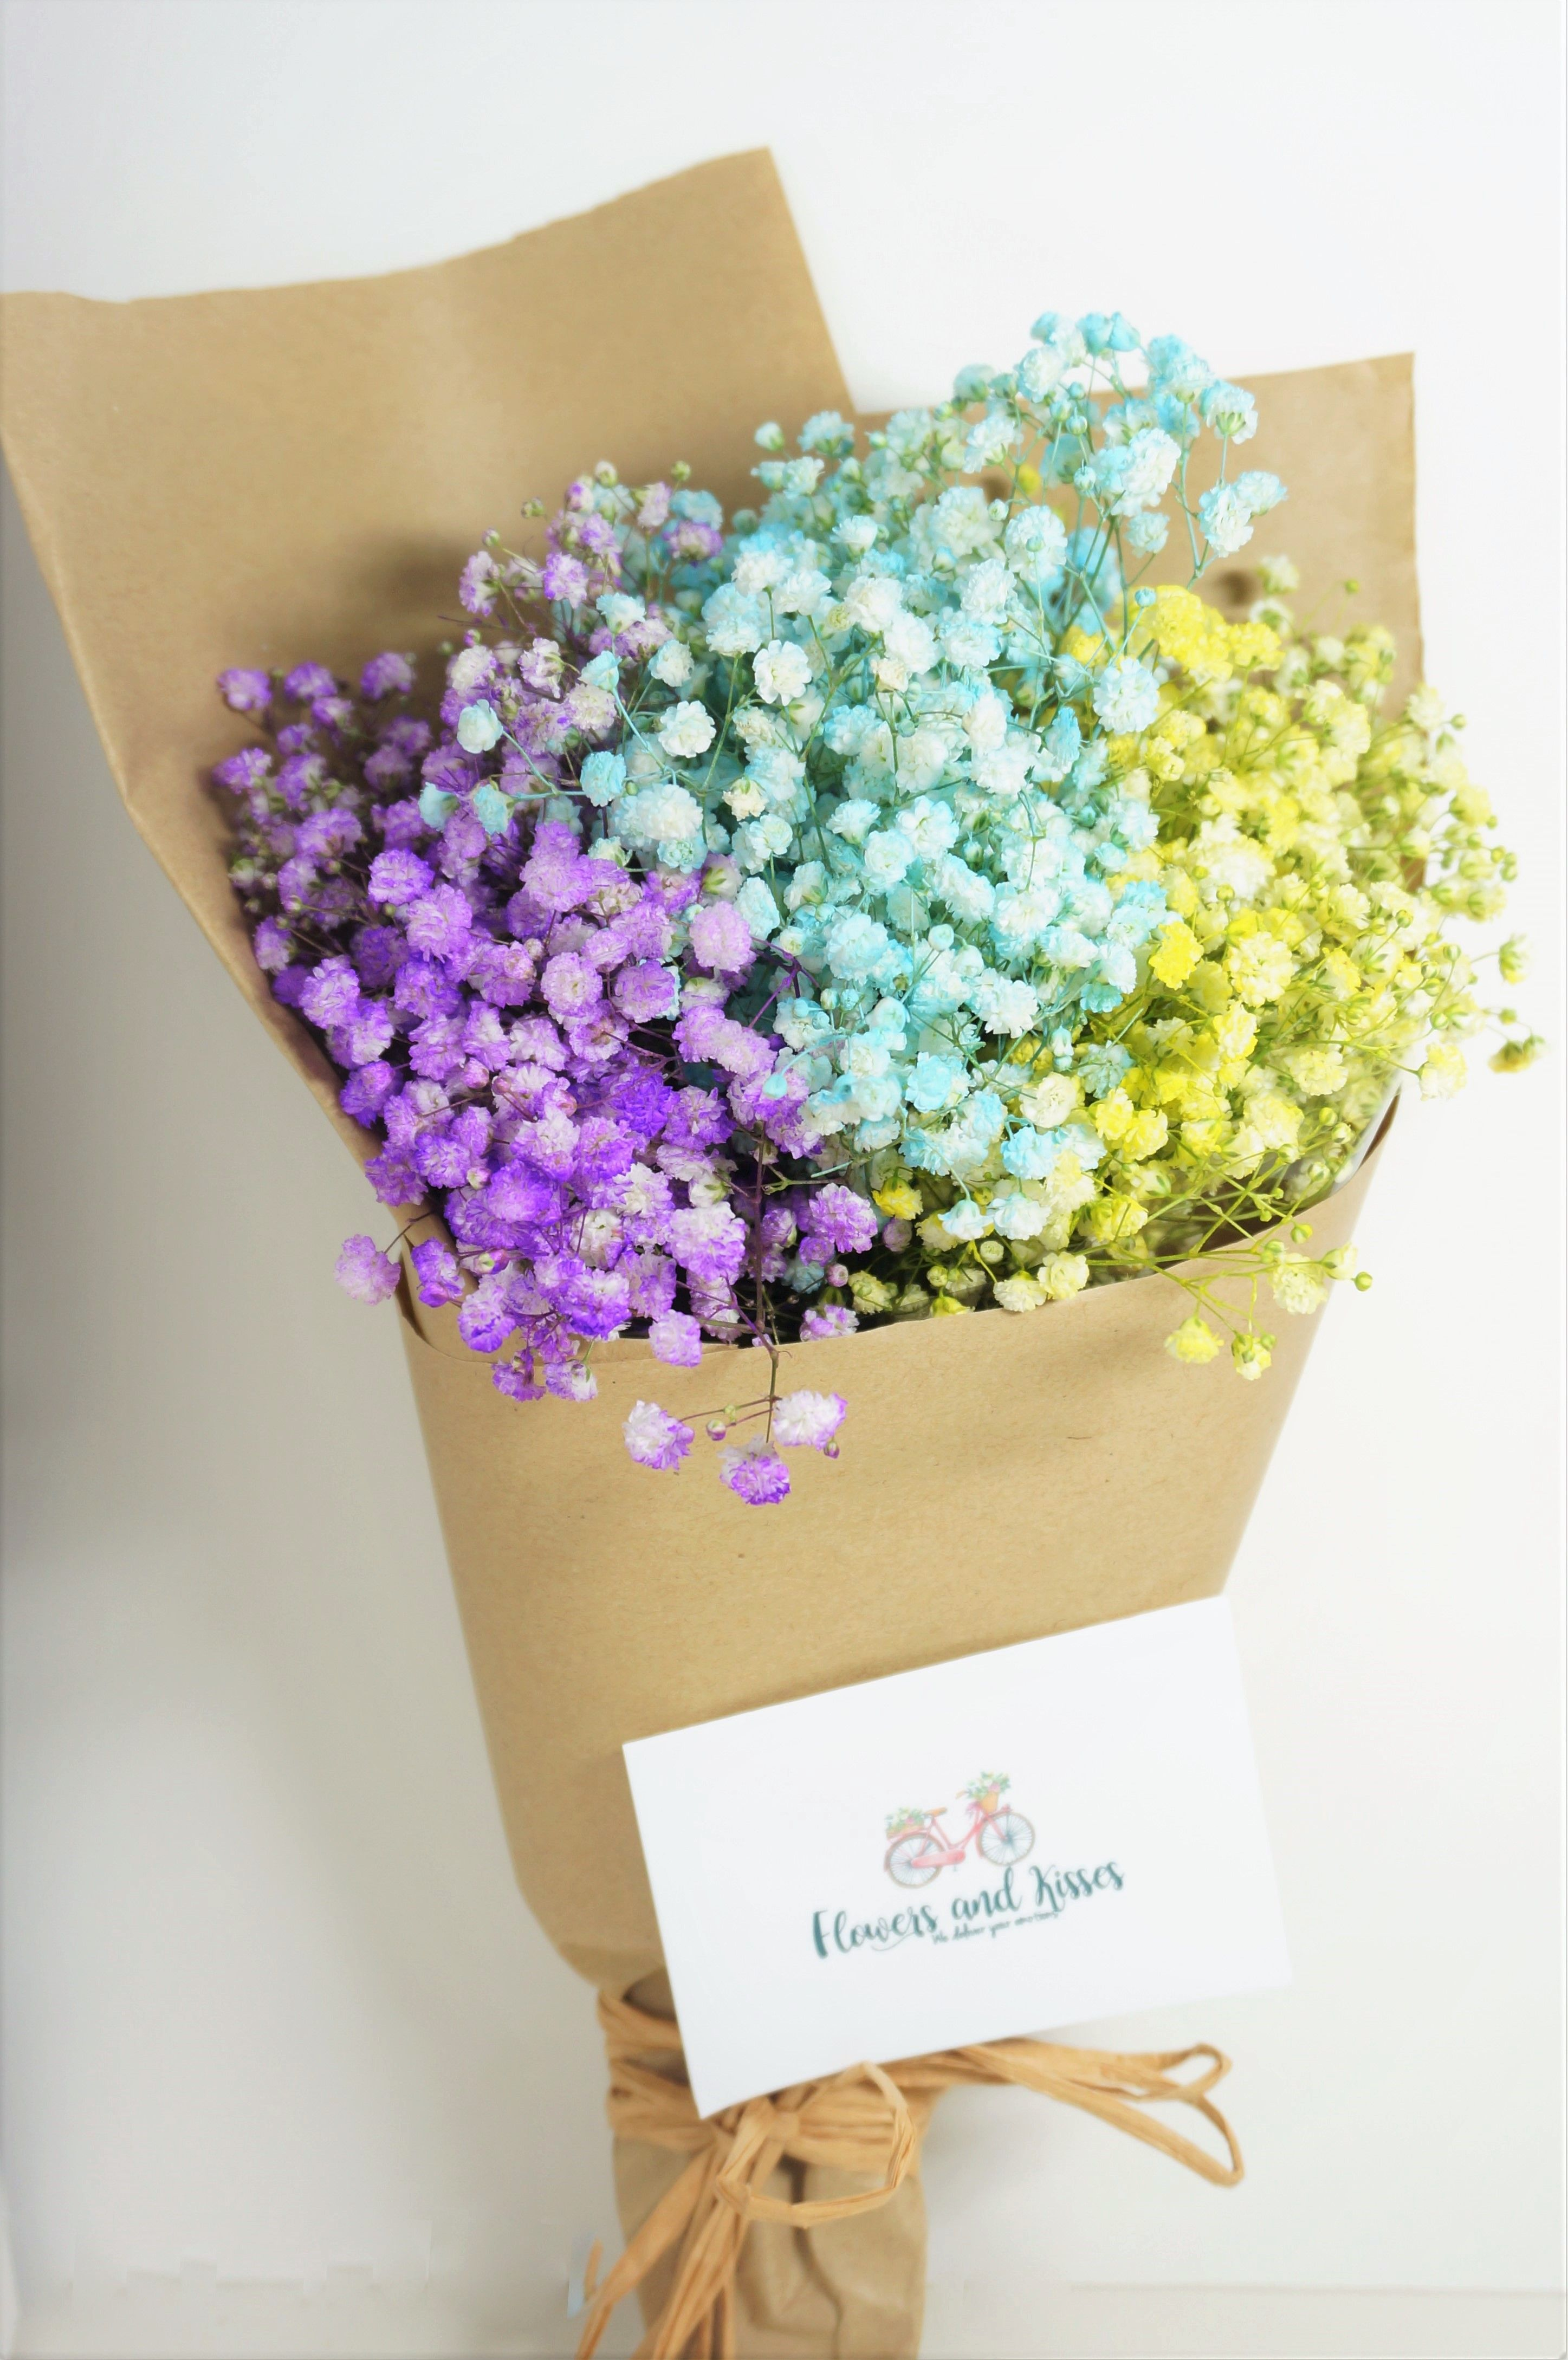 Rainbow Baby S Breath Bouquets Rainbow Babybreath Bouquet Same Day Flower Delivery Babys Breath Rainbow Baby